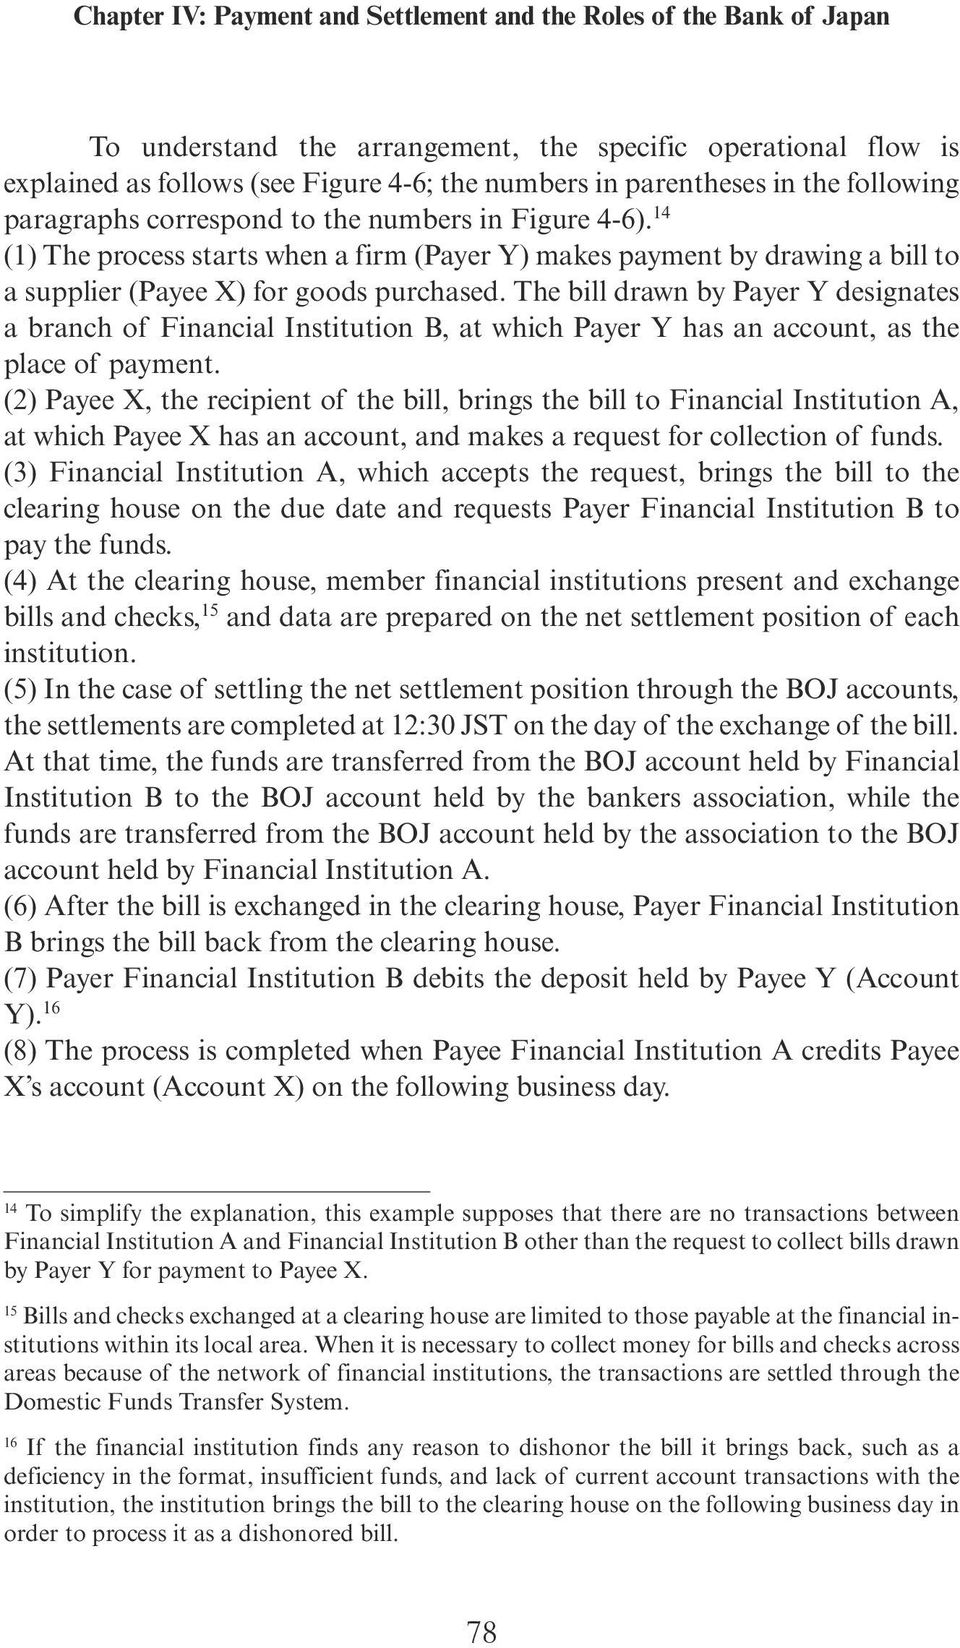 The bill drawn by Payer Y designates a branch of Financial Institution B, at which Payer Y has an account, as the place of payment.